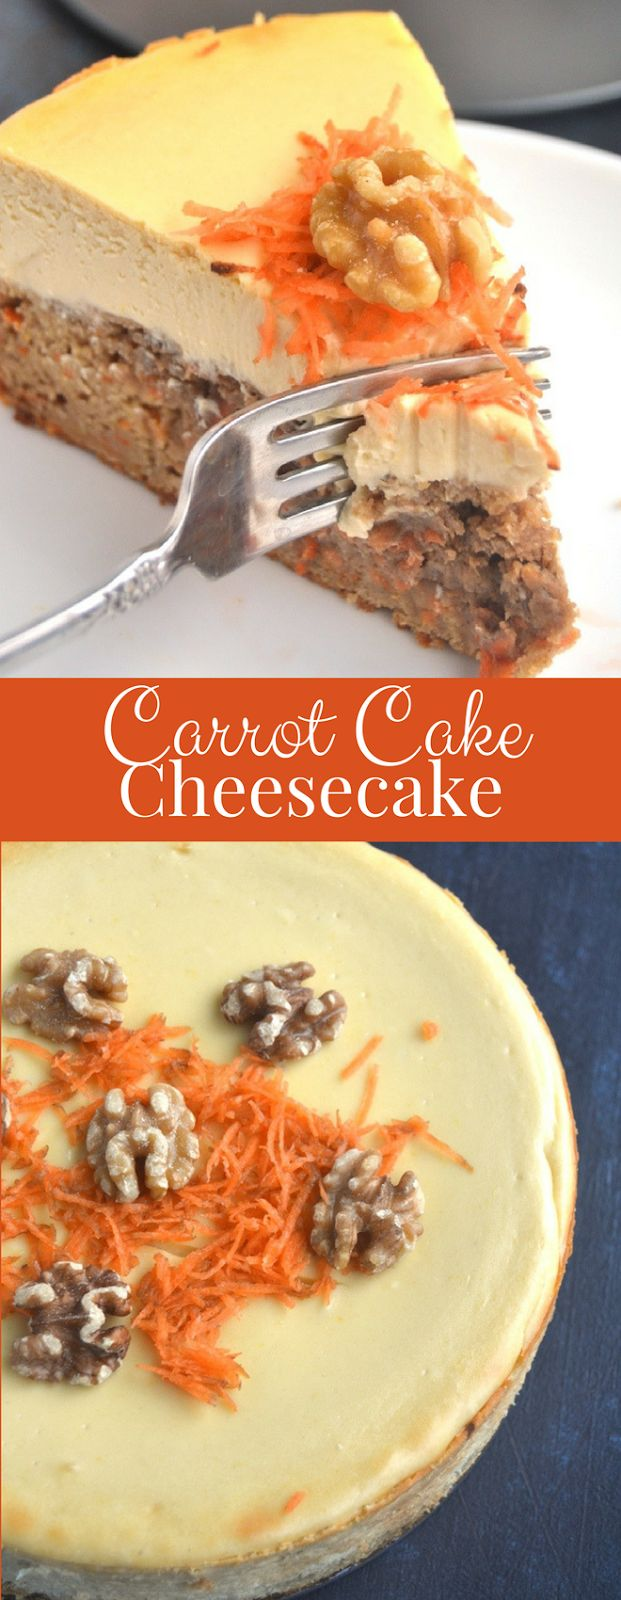 Carrot Cake Cheesecake features a whole-grain, dense carrot cake bottom and rich, creamy, Greek yogurt cheesecake combined in one for the perfect dessert! www.nutritionistreviews.com #cheesecake #cake #dessert #healthier #easter #spring